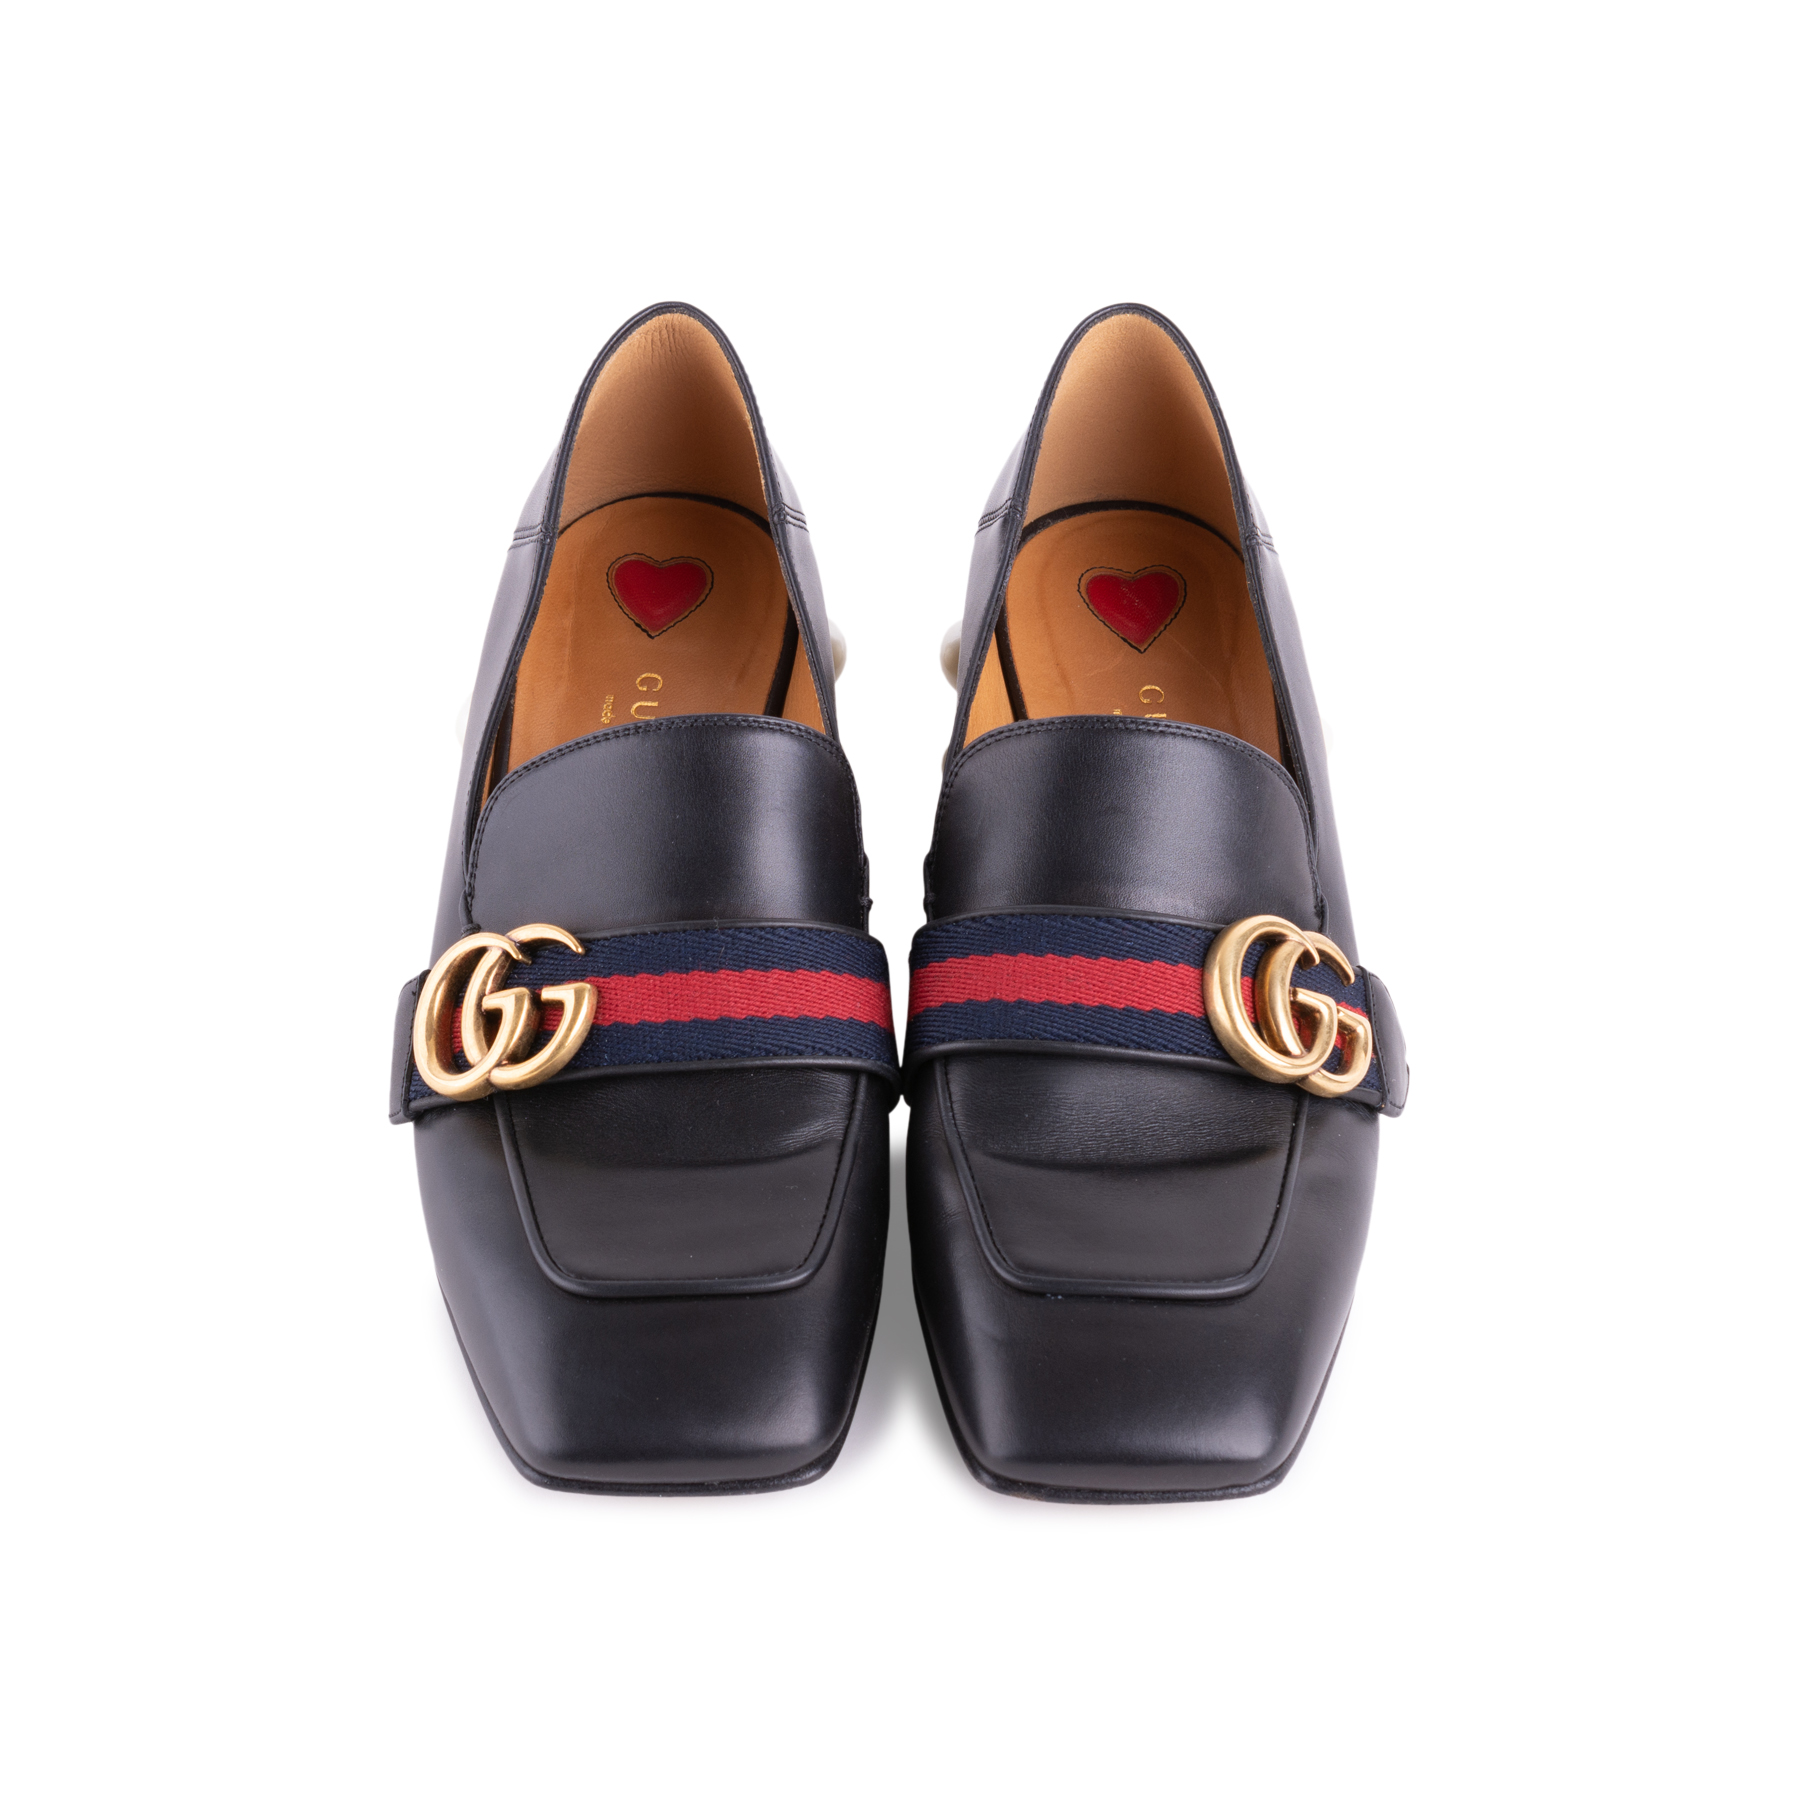 d84eea3be4f Authentic Second Hand Gucci Peyton Pearl-Embellished Heel Loafers  (PSS-607-00012)